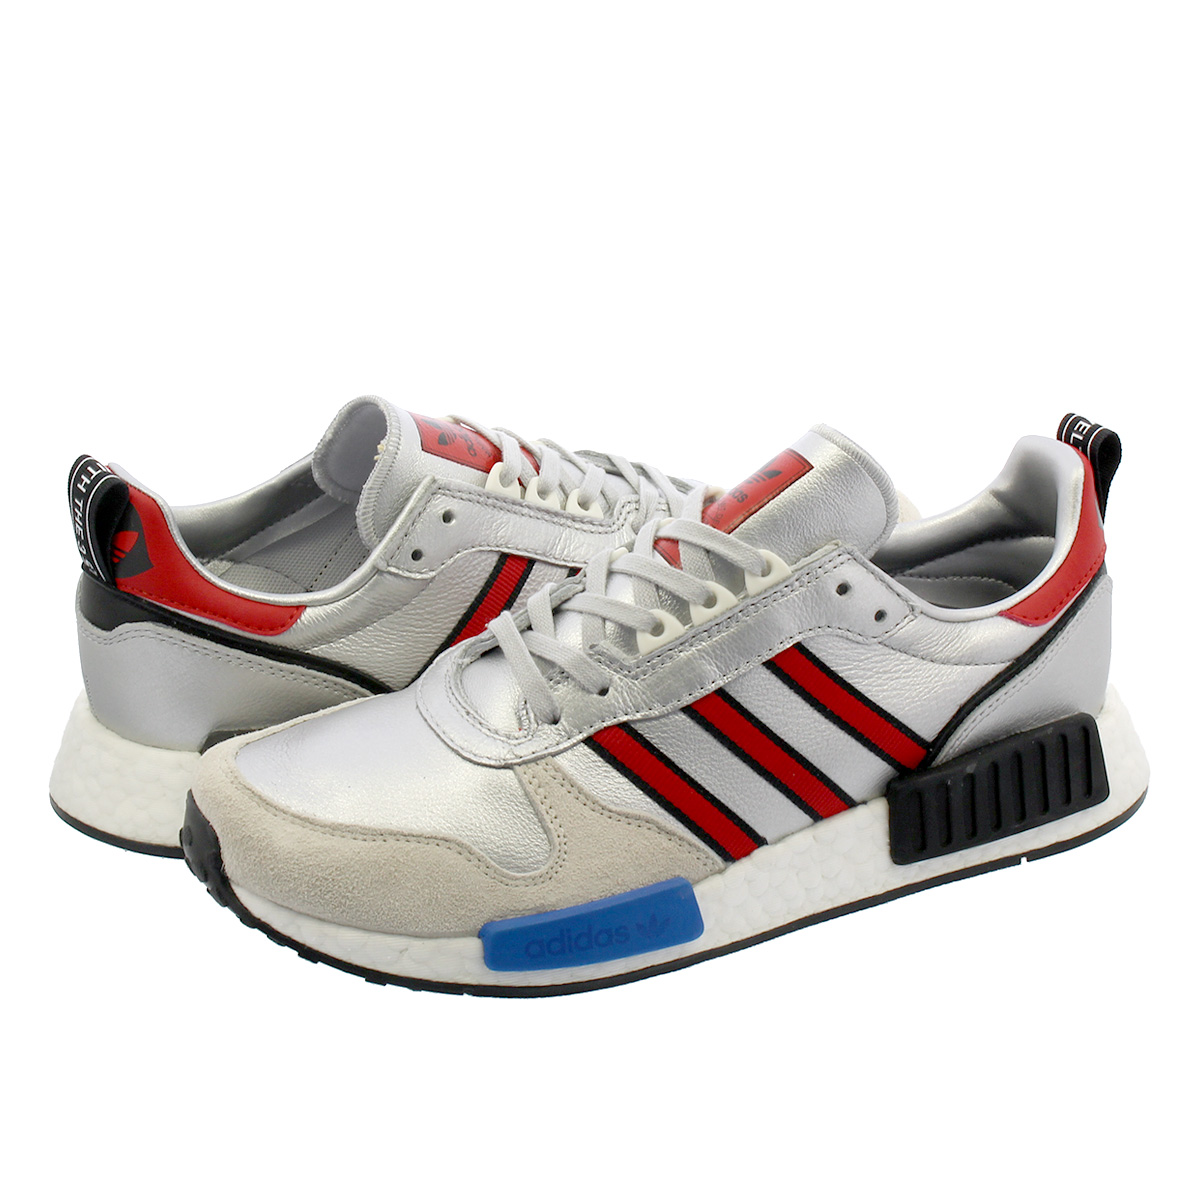 adidas RISINGSTAR x R1 【Never Made】 【国内店舗限定モデル】 アディダス ライジングスター x R1 SILVER MET/COLLEGE RED/RUNNING WHITE